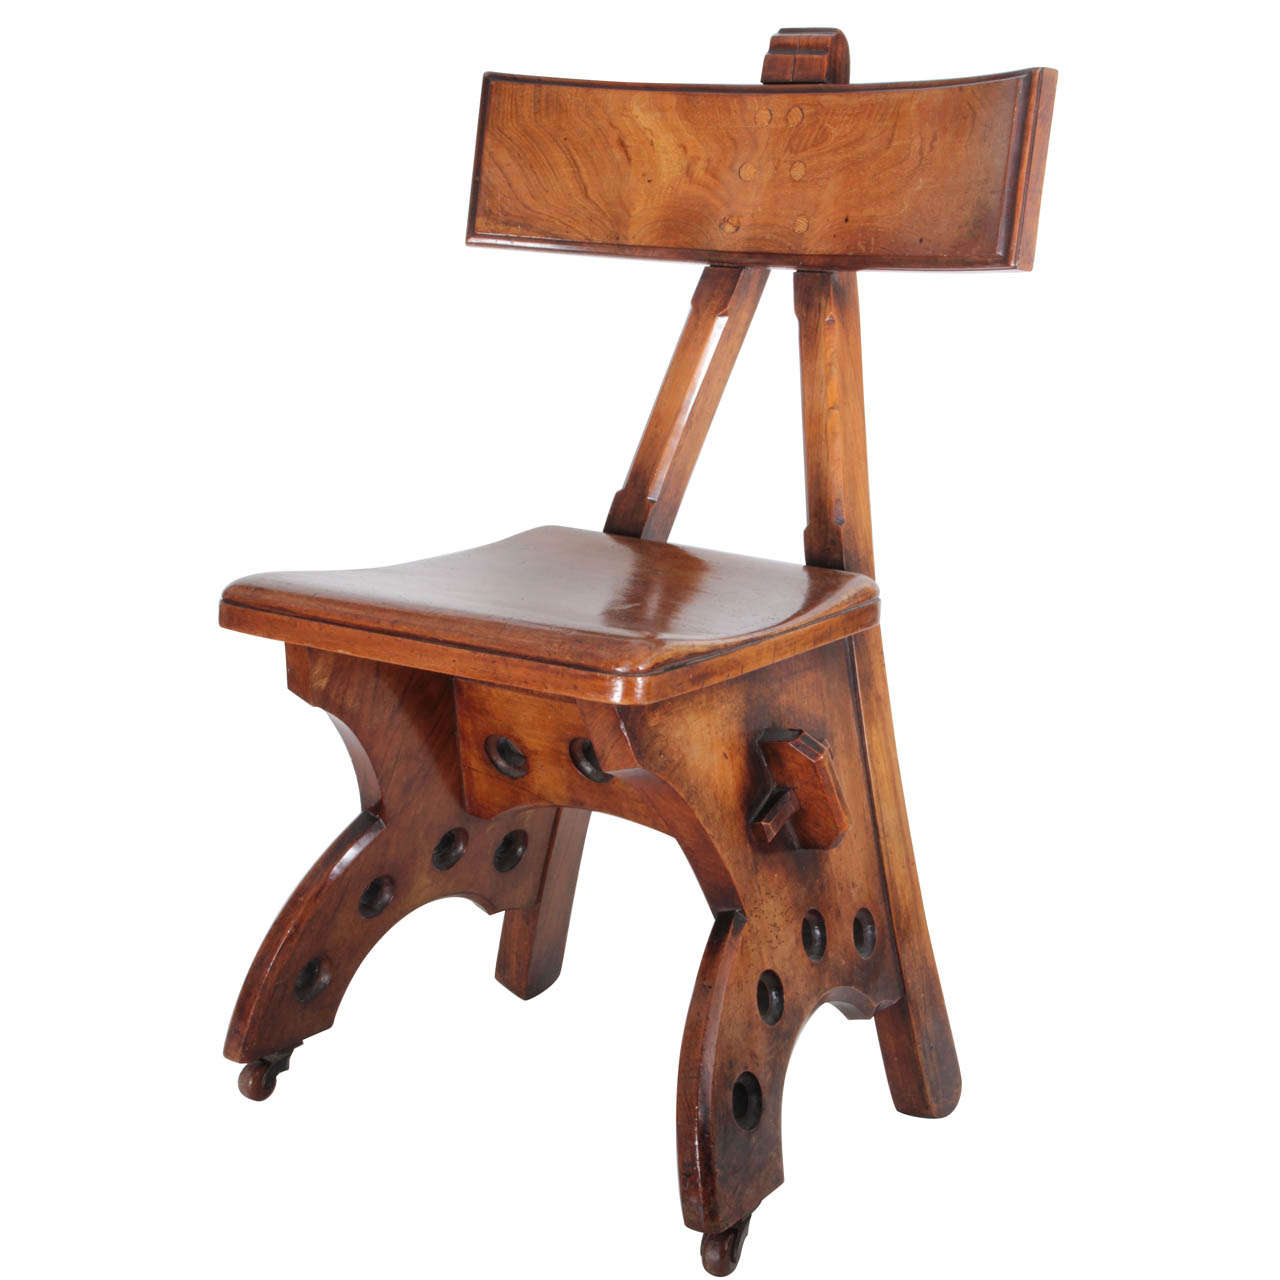 Arts and crafts furniture chair - Edward Welby Pugin Granville Early Arts And Crafts Walnut Chair C 1870 At 1stdibs